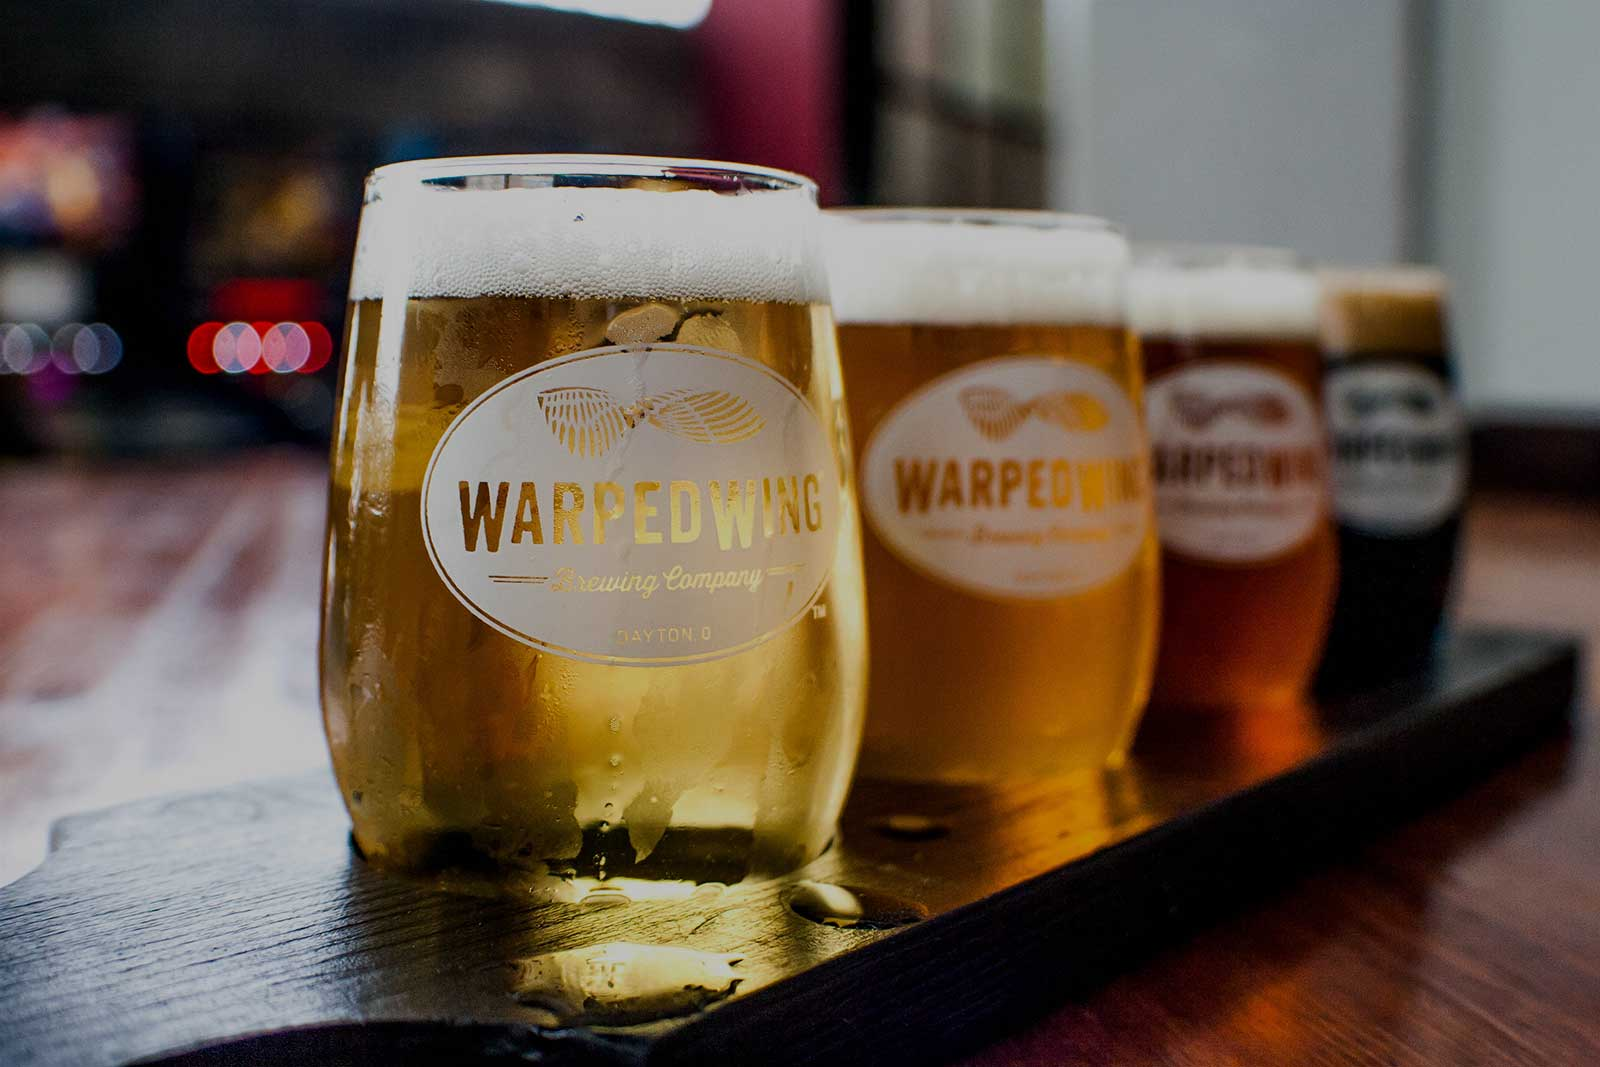 Warped Wing Beer - Downtown Dayton's Favorite Brewery